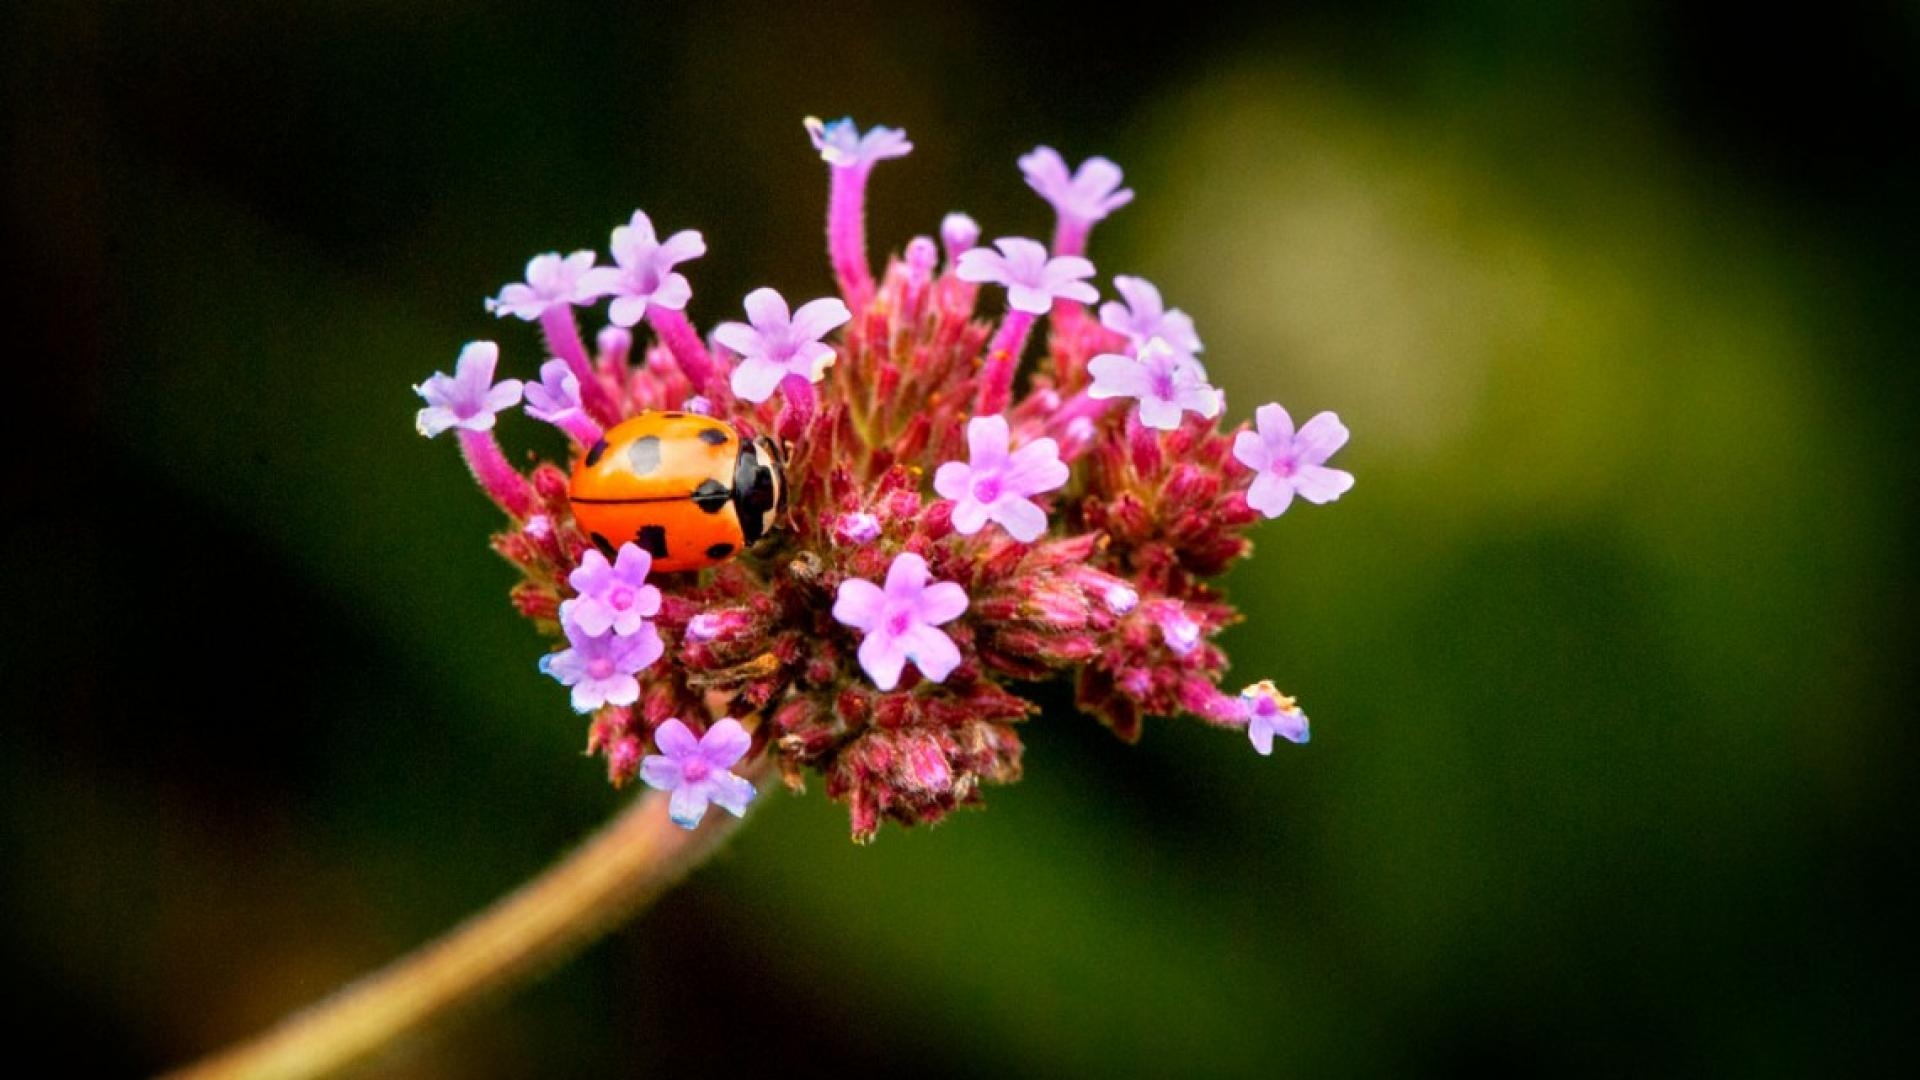 A lady bug on a flower